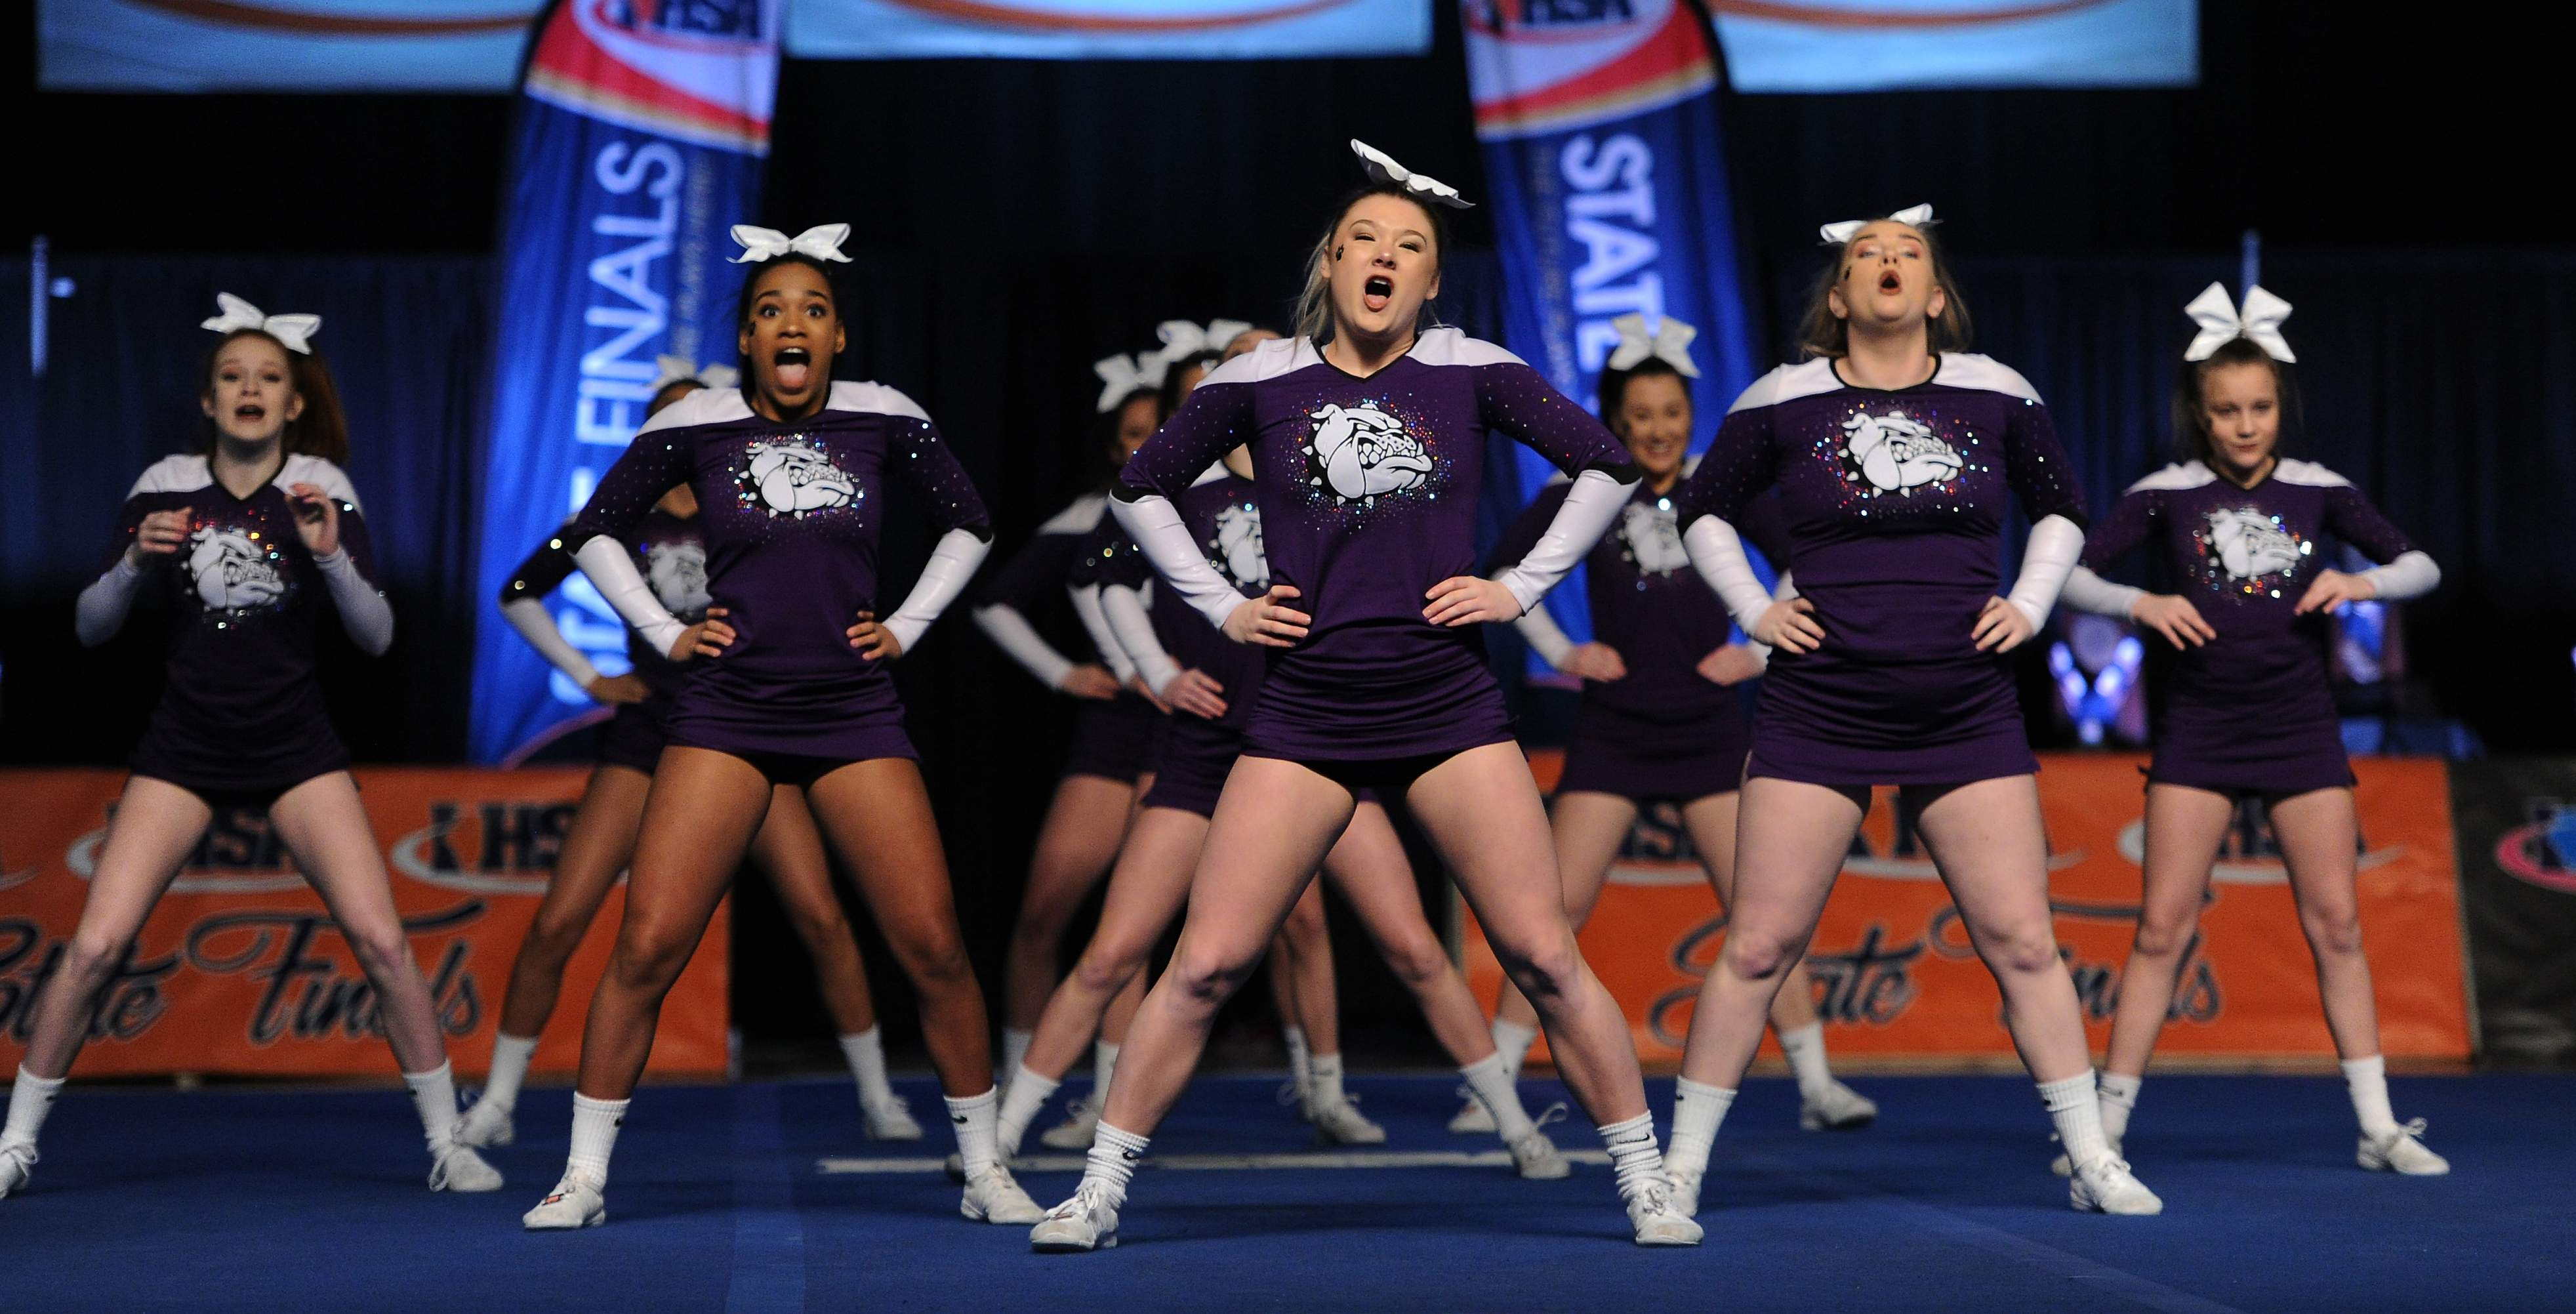 Harrisburg small team division of the girls state cheerleading prelims do their routine in Bloomington on Friday.